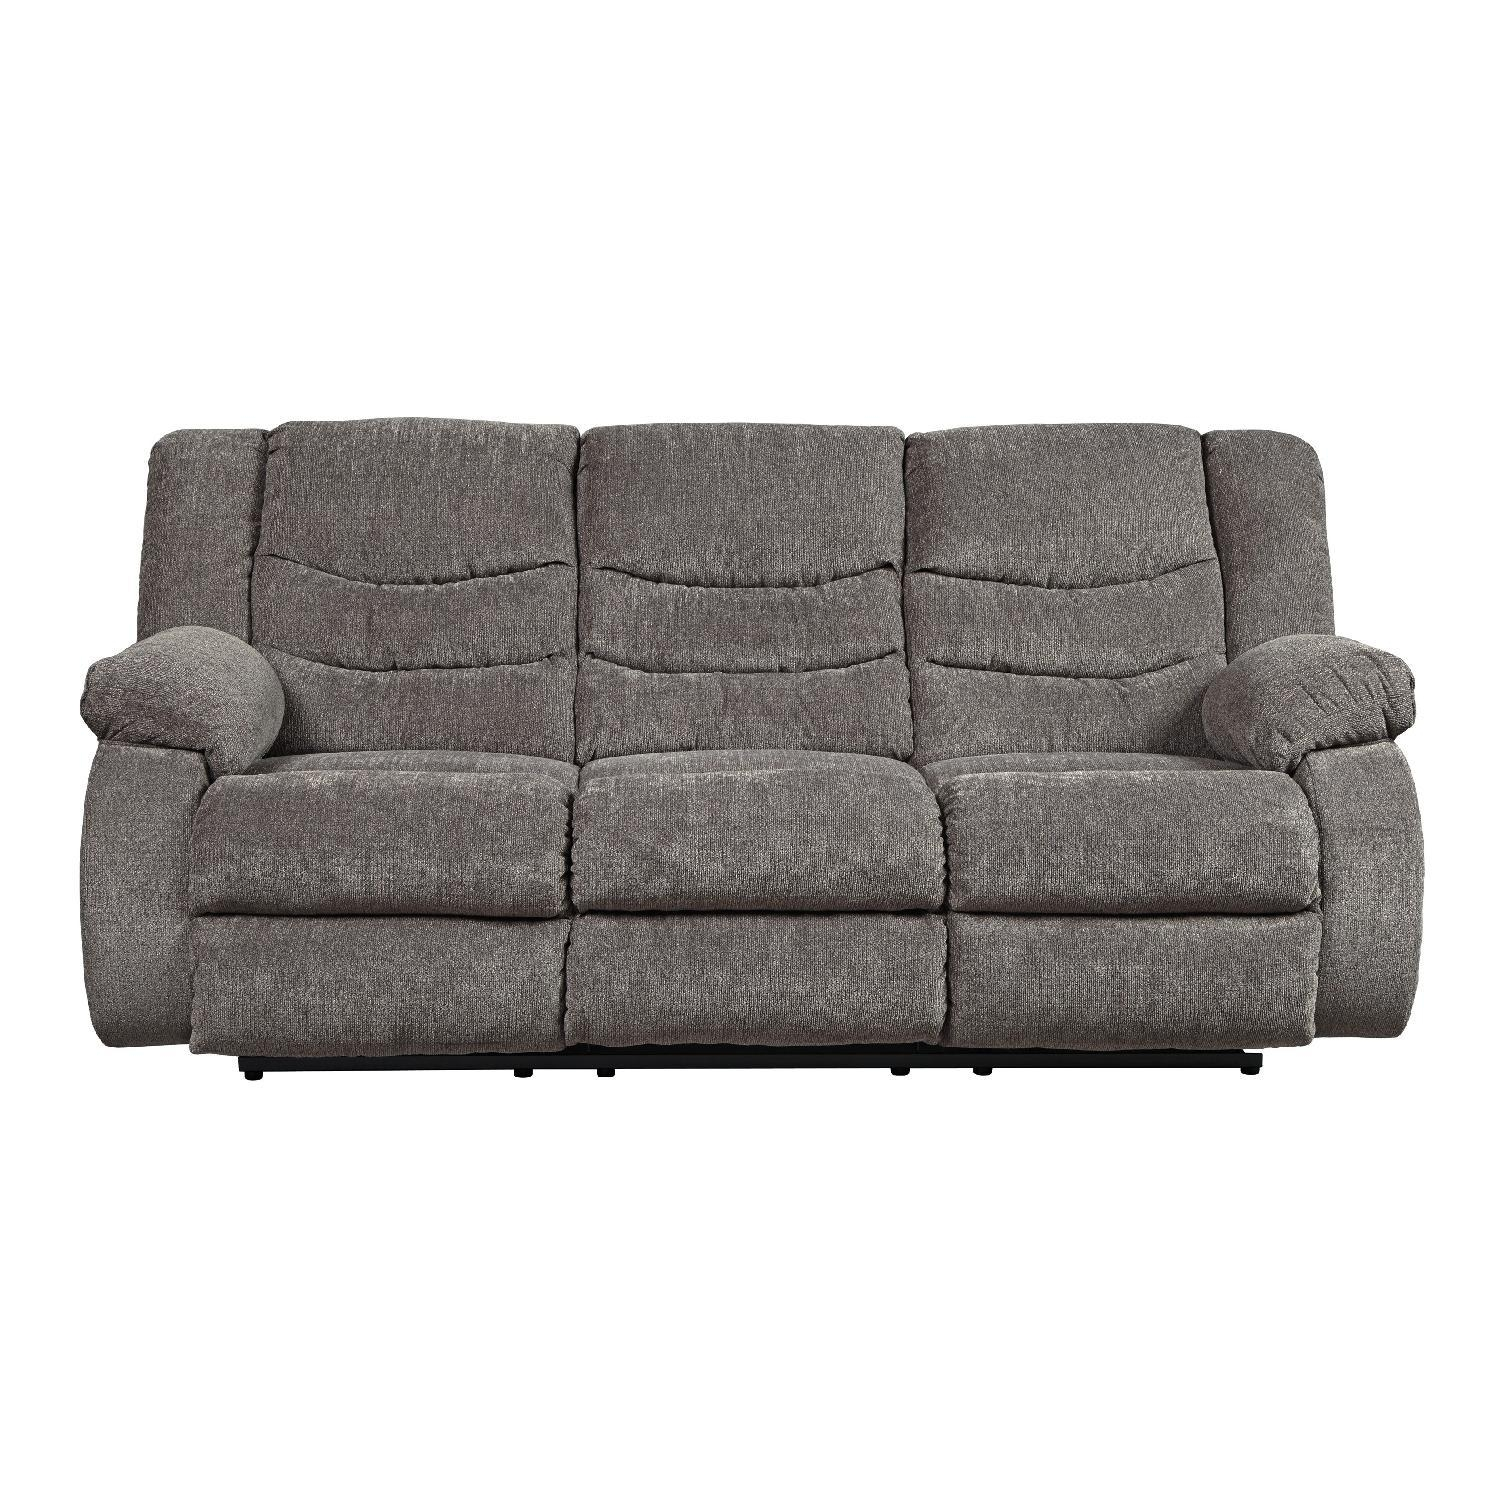 Ashley's Tulen Contemporary Reclining Sofa In Fabric – Aptdeco With Regard To Contemporary Fabric Sofas (View 18 of 20)